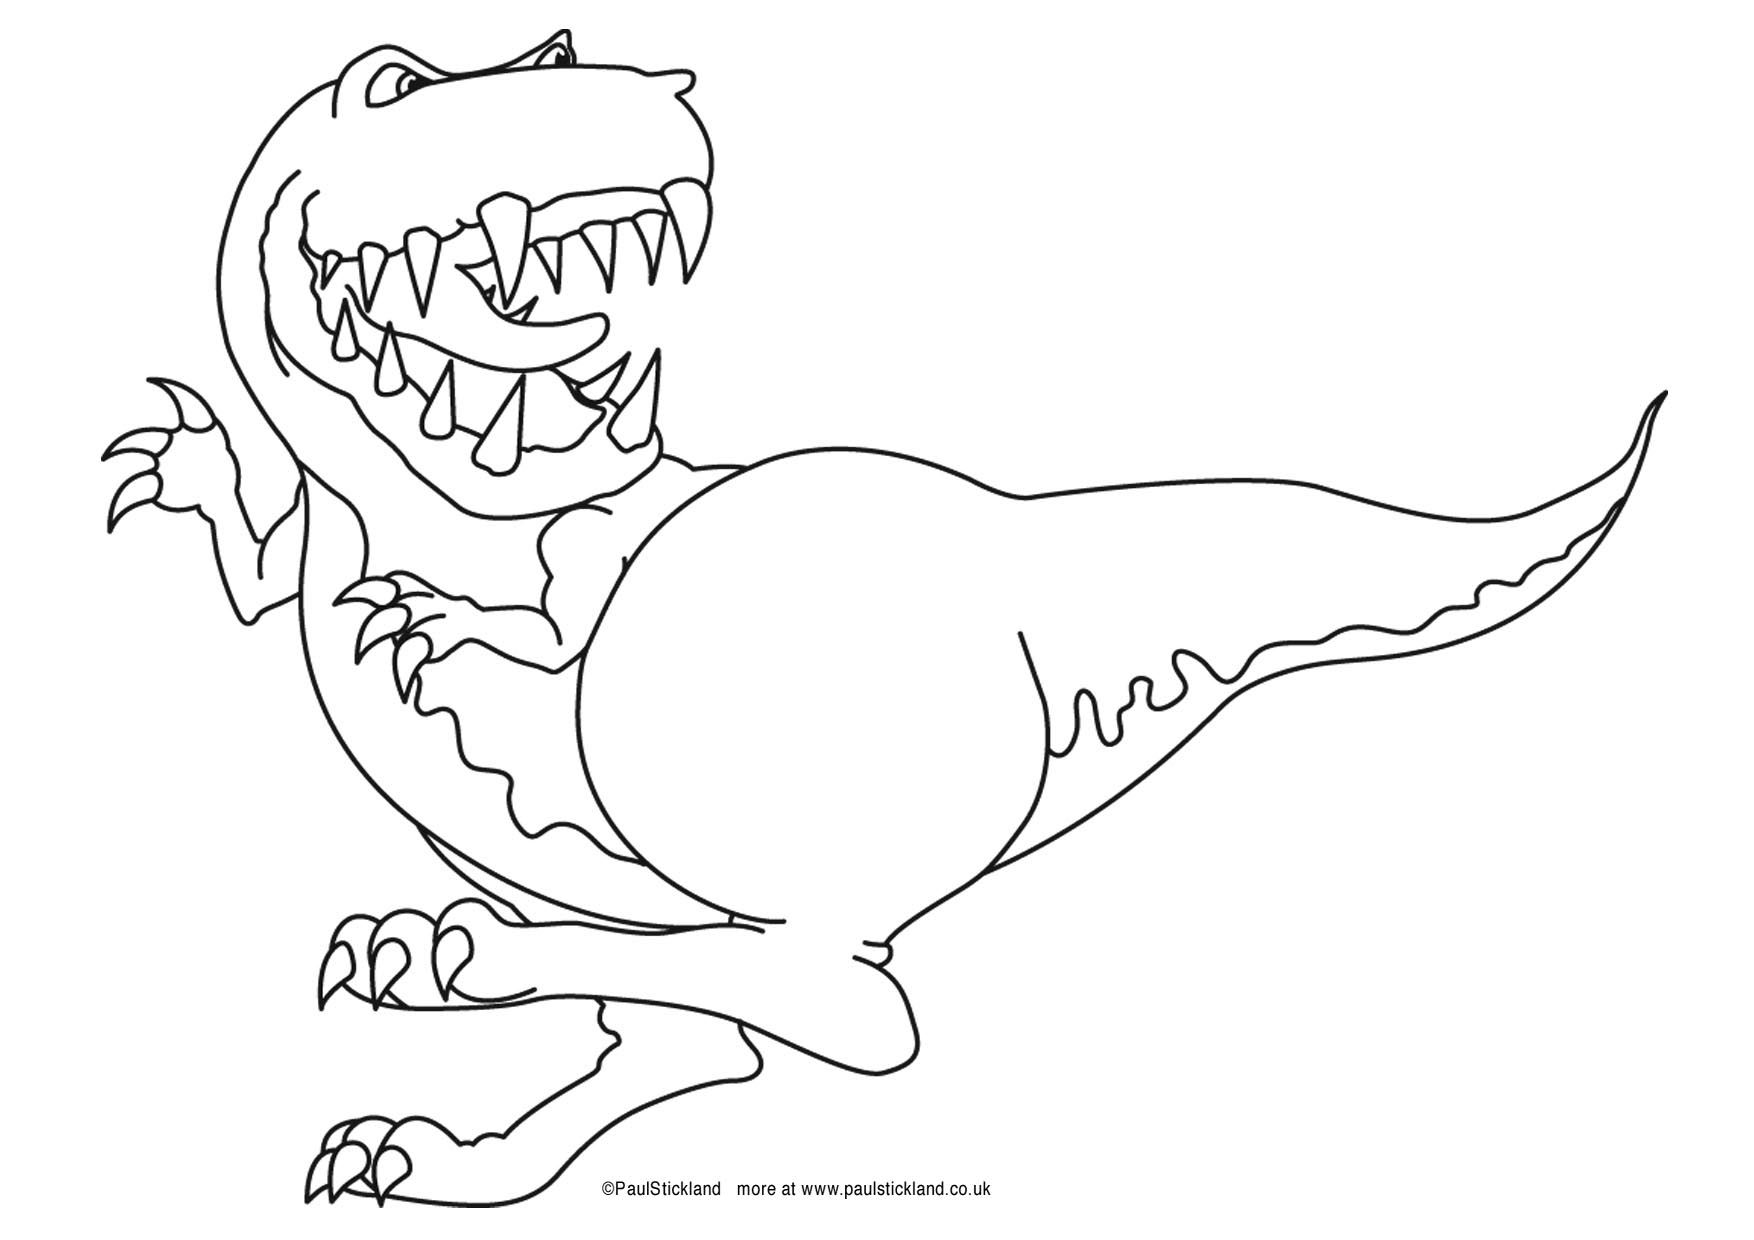 Free Dinosaur Colouring Pages And Downloads From Paul Stickland S Dinosaur Roar And Ten